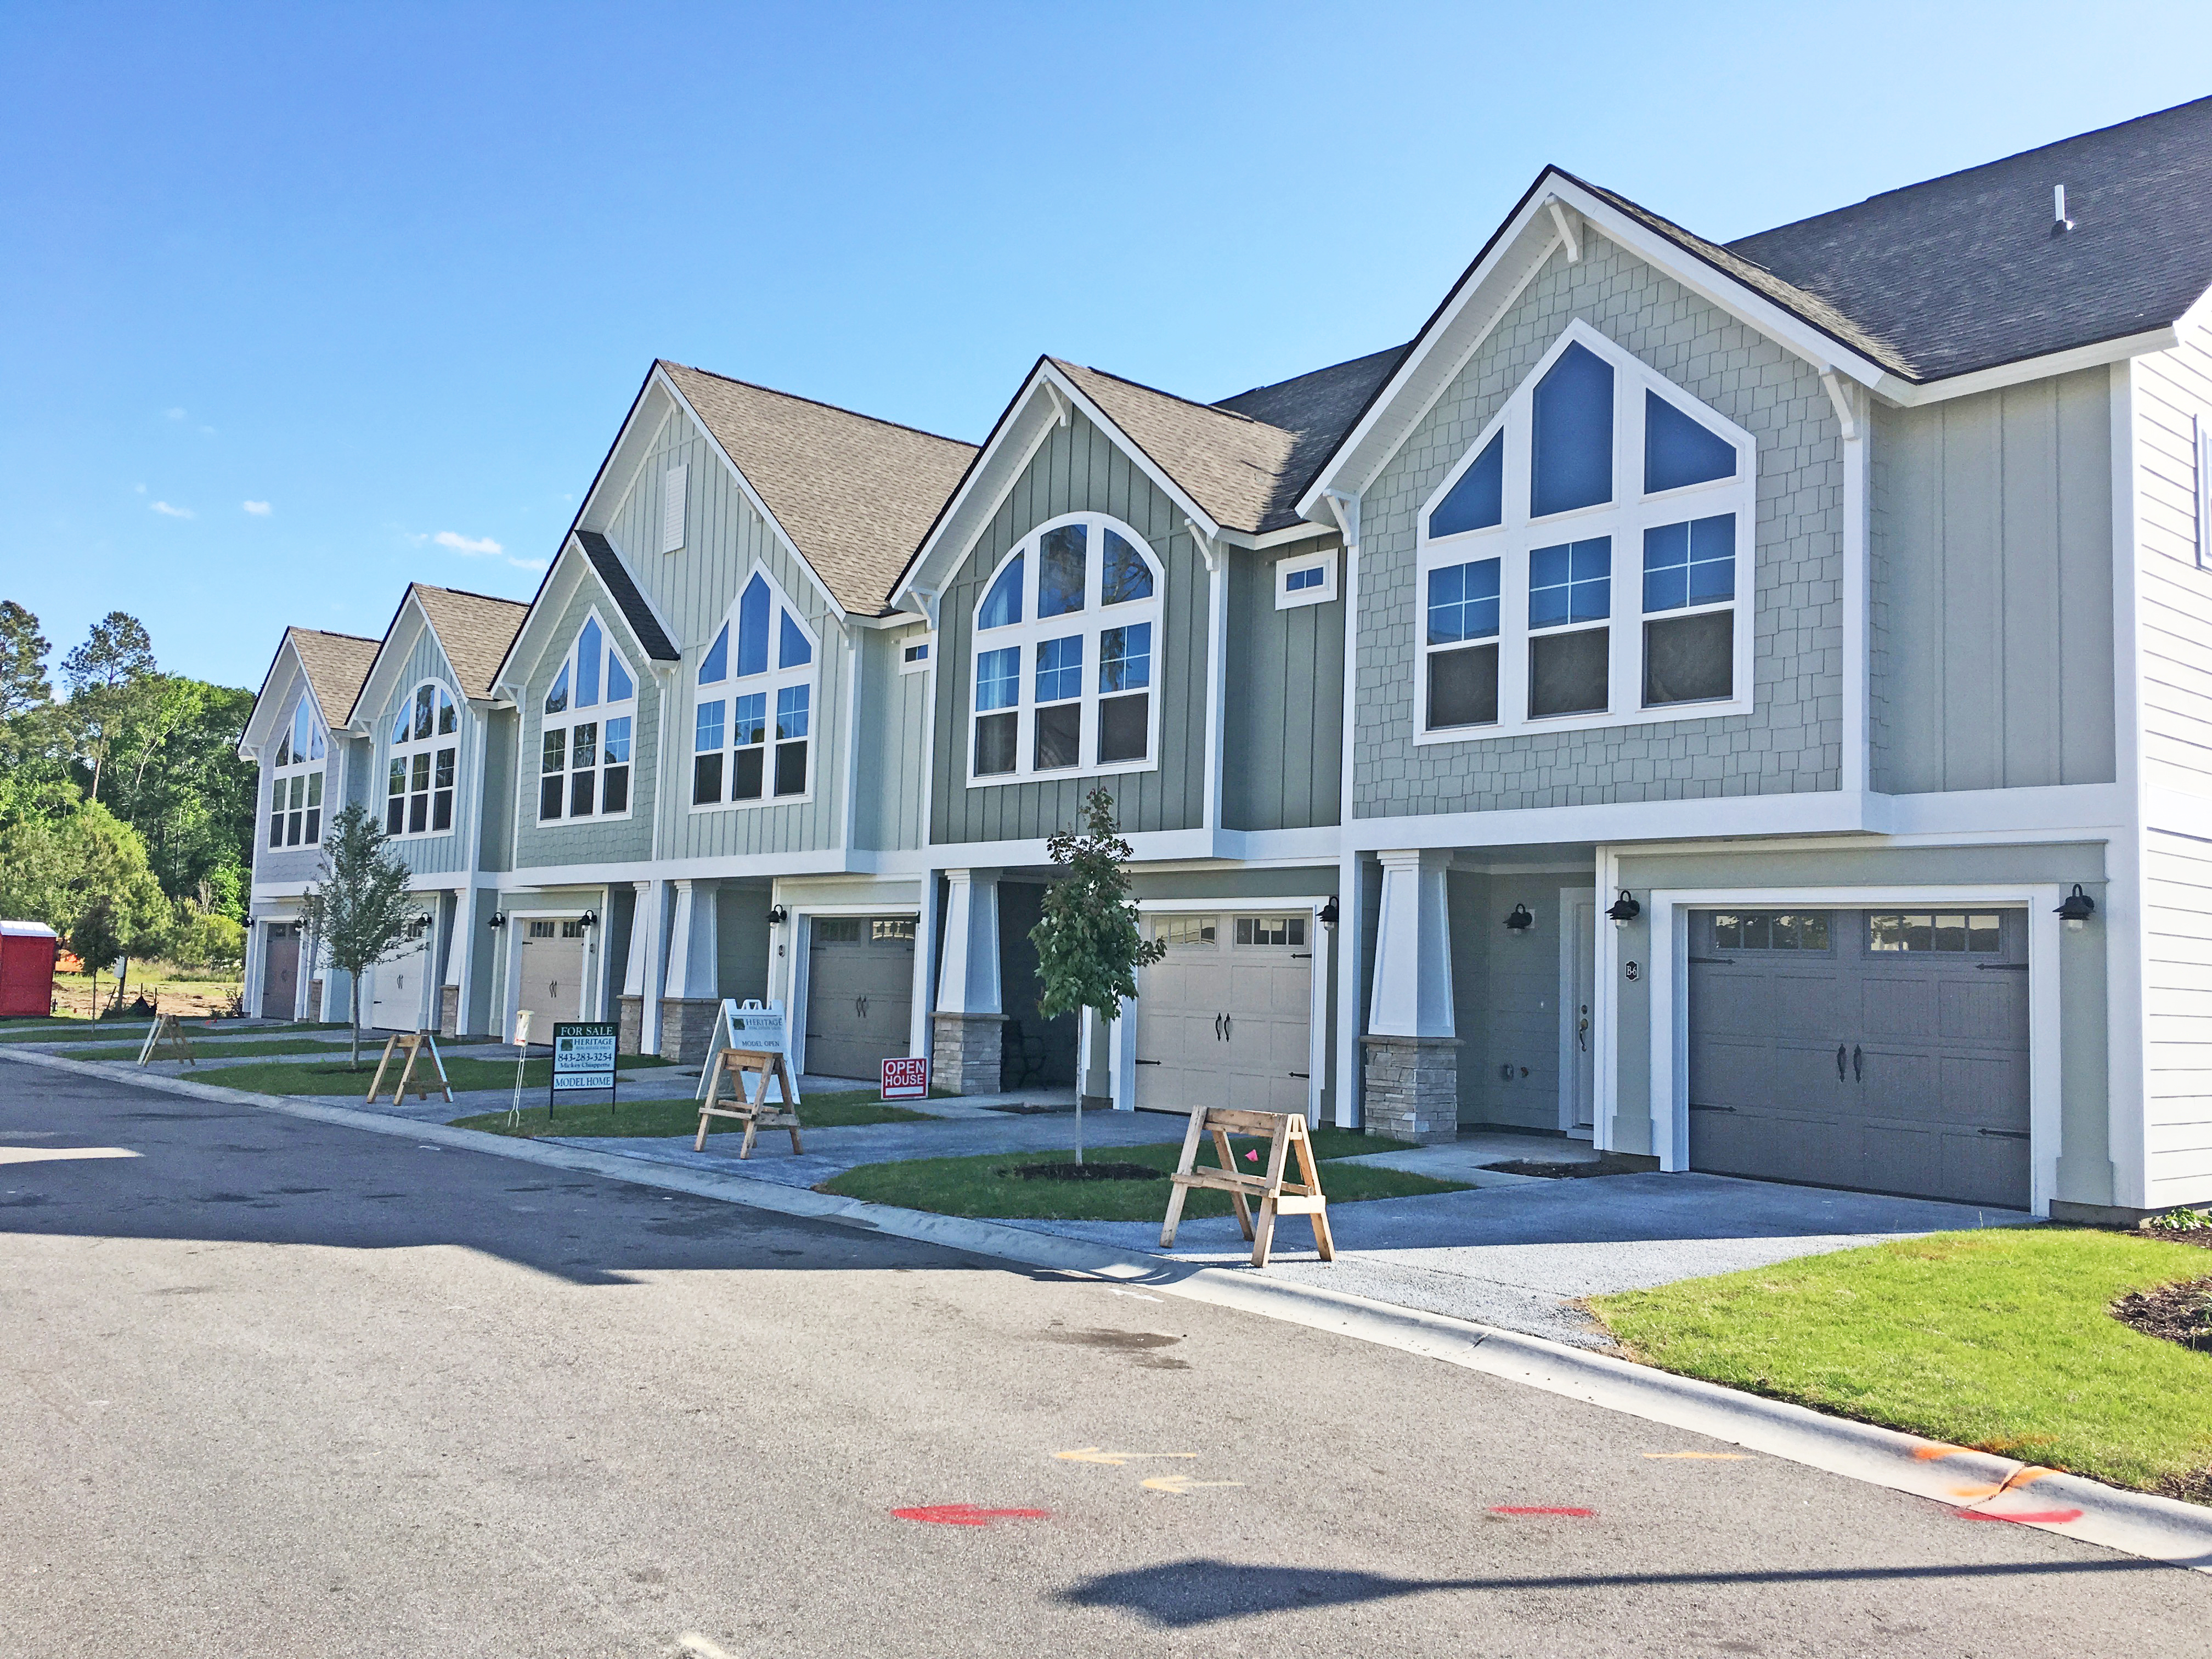 Townhouse Designs And Floor Plans Oceanbay Townhomes Myrtle Beach South Carolinamyrtle Beach